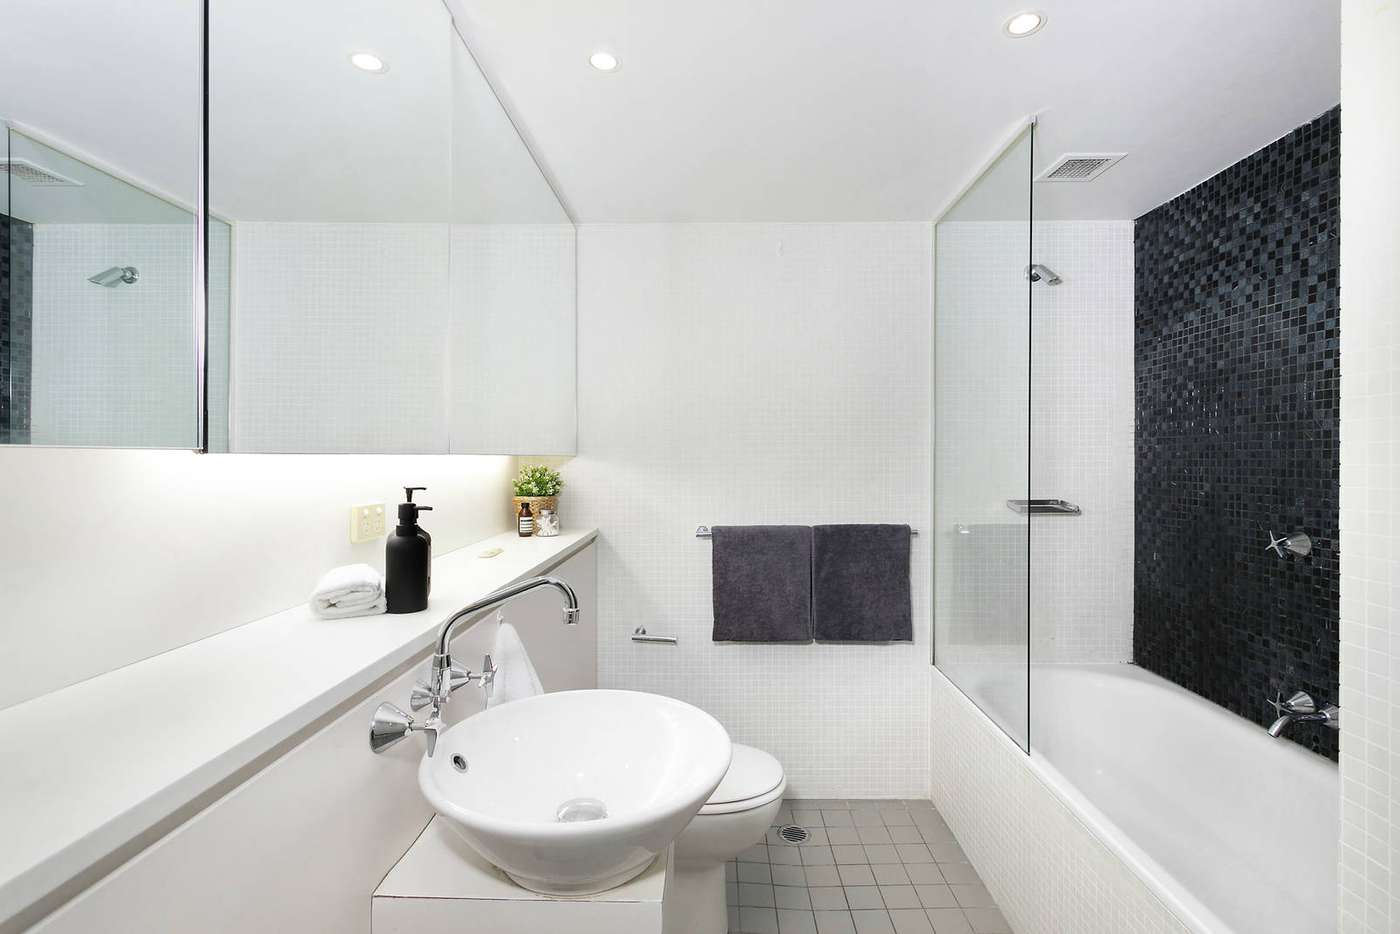 Fifth view of Homely apartment listing, 403/23 Shelley Street, Sydney NSW 2000